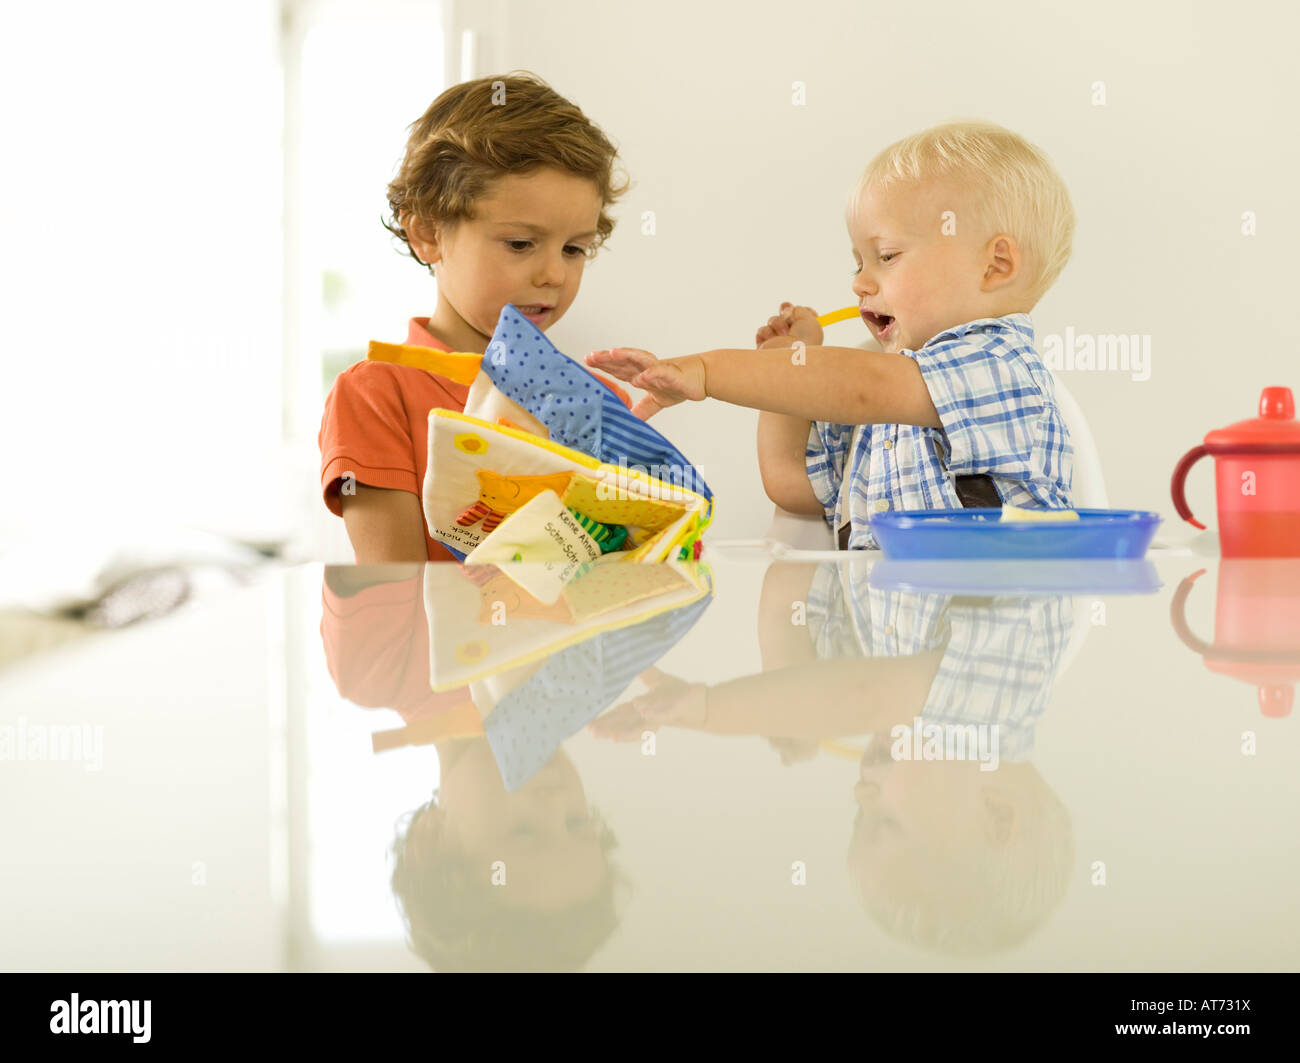 Two boys (4-5), (12-24 months), looking at picture book - Stock Image